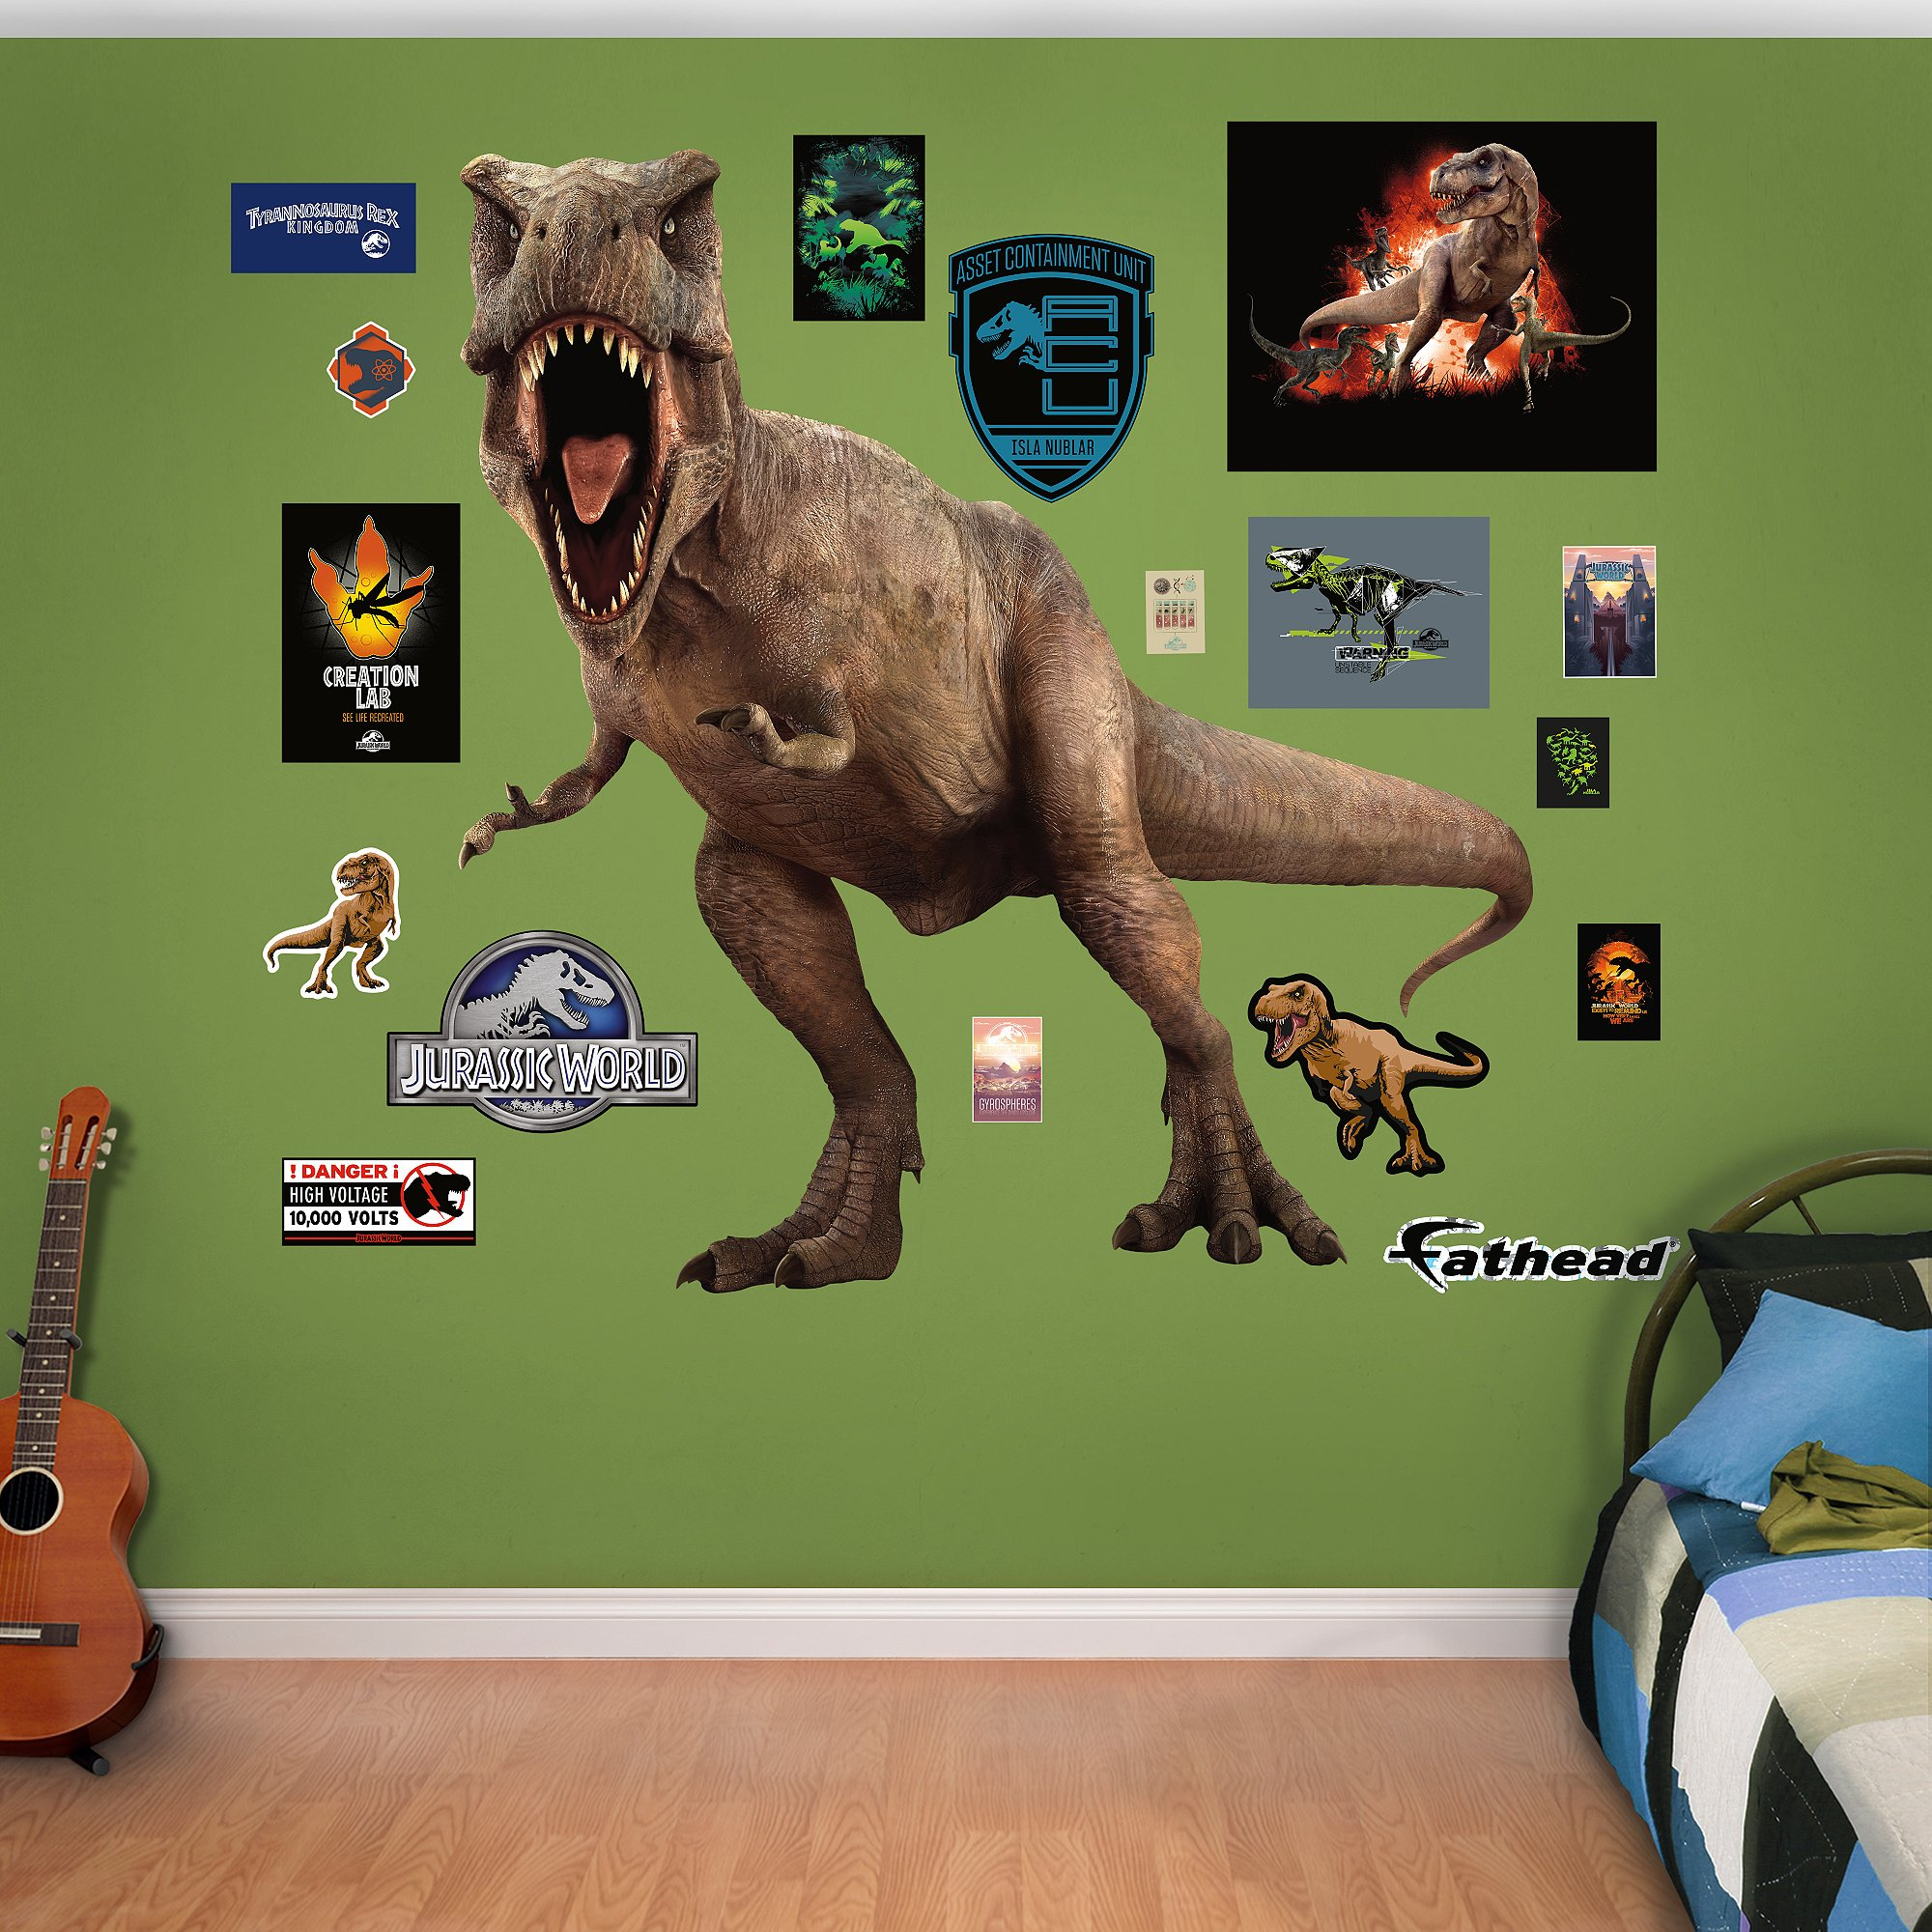 Fathead T-Rex-Jurassic World Real Decals by FATHEAD